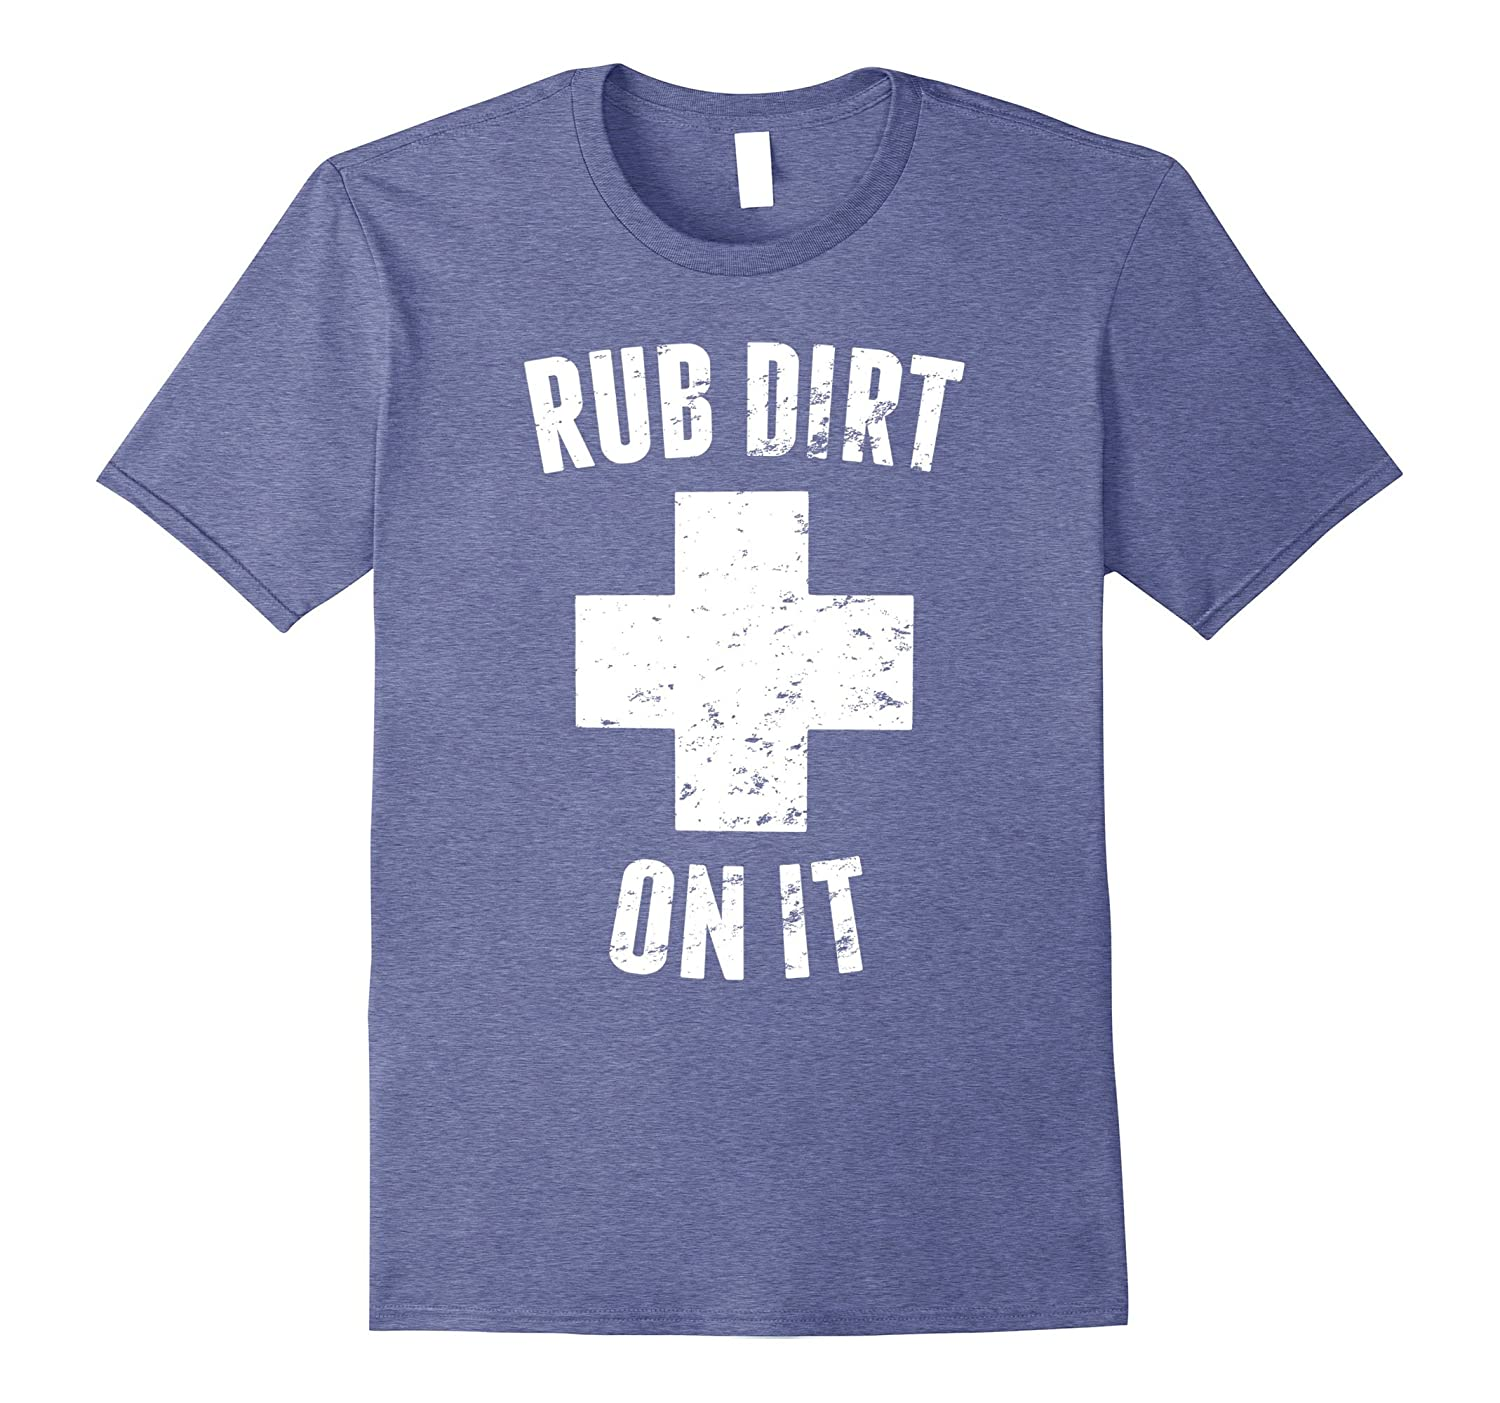 'Rub Dirt On It' Funny Baseball Sports T-shirt-TH